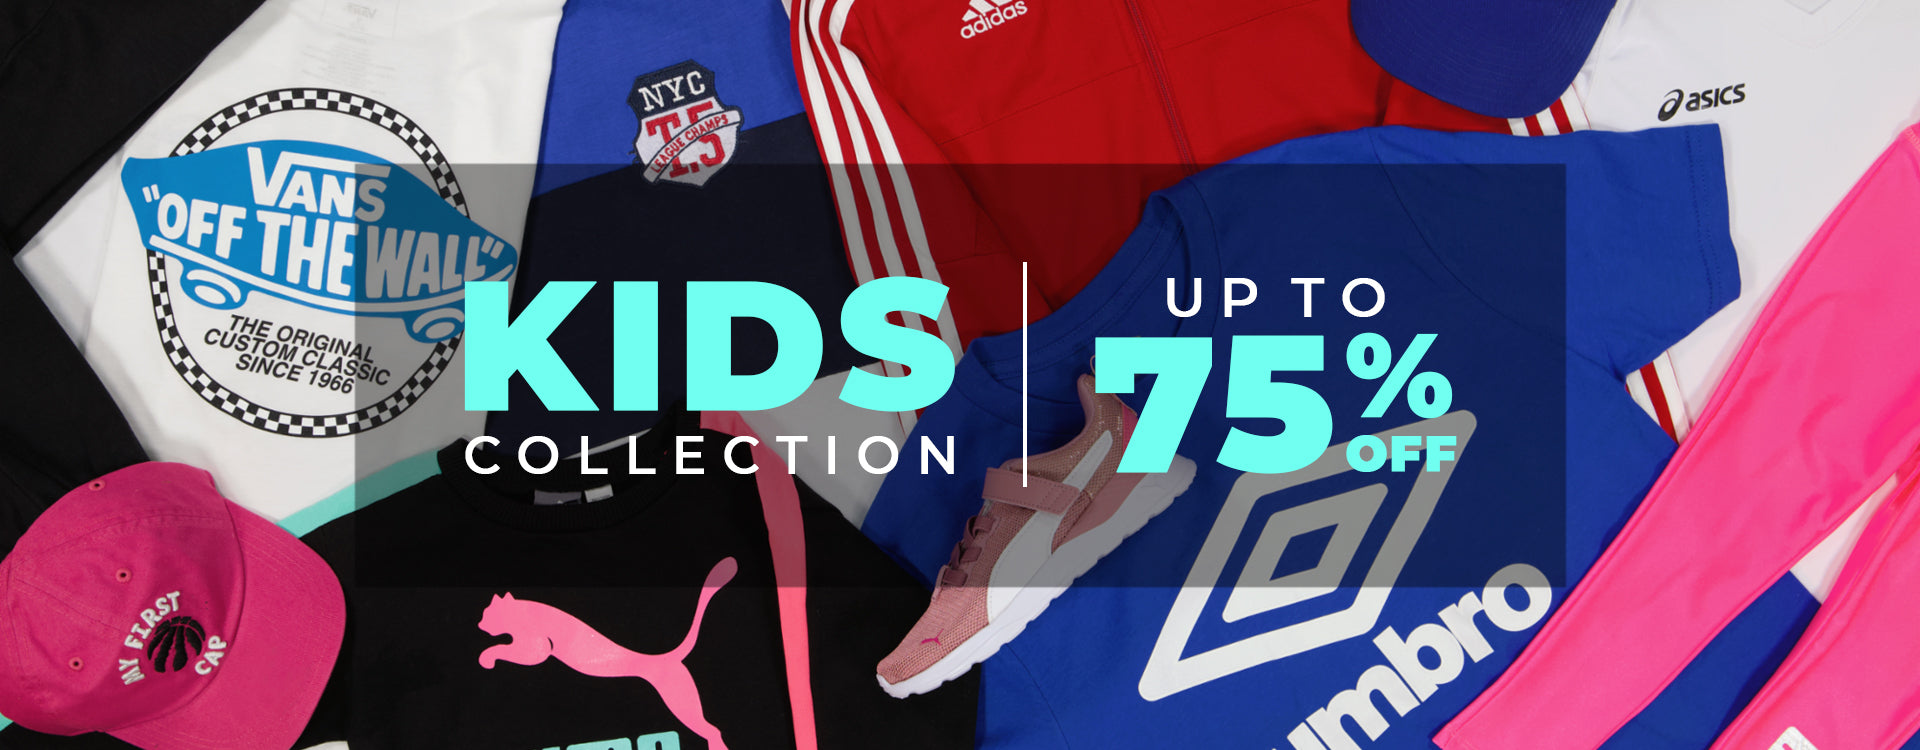 Kids' Collection Up To 75% Off